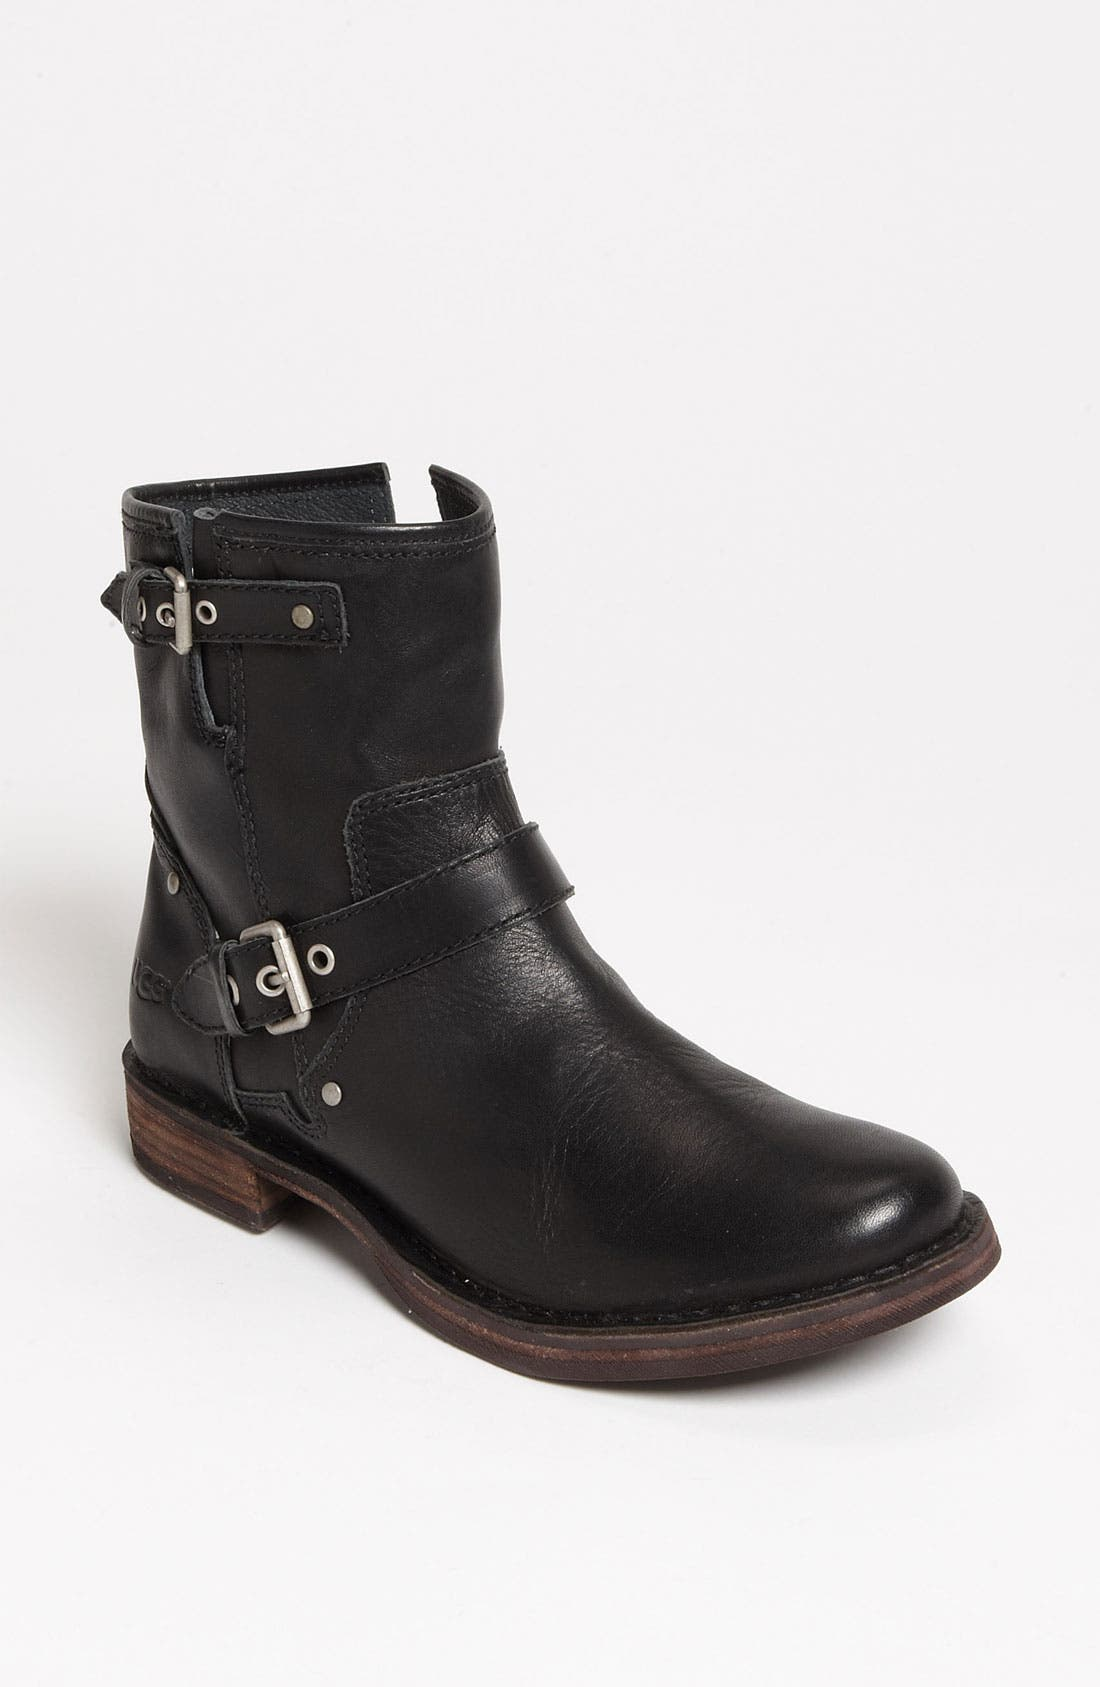 Alternate Image 1 Selected - UGG® 'Fabrizia' Boot (Women)